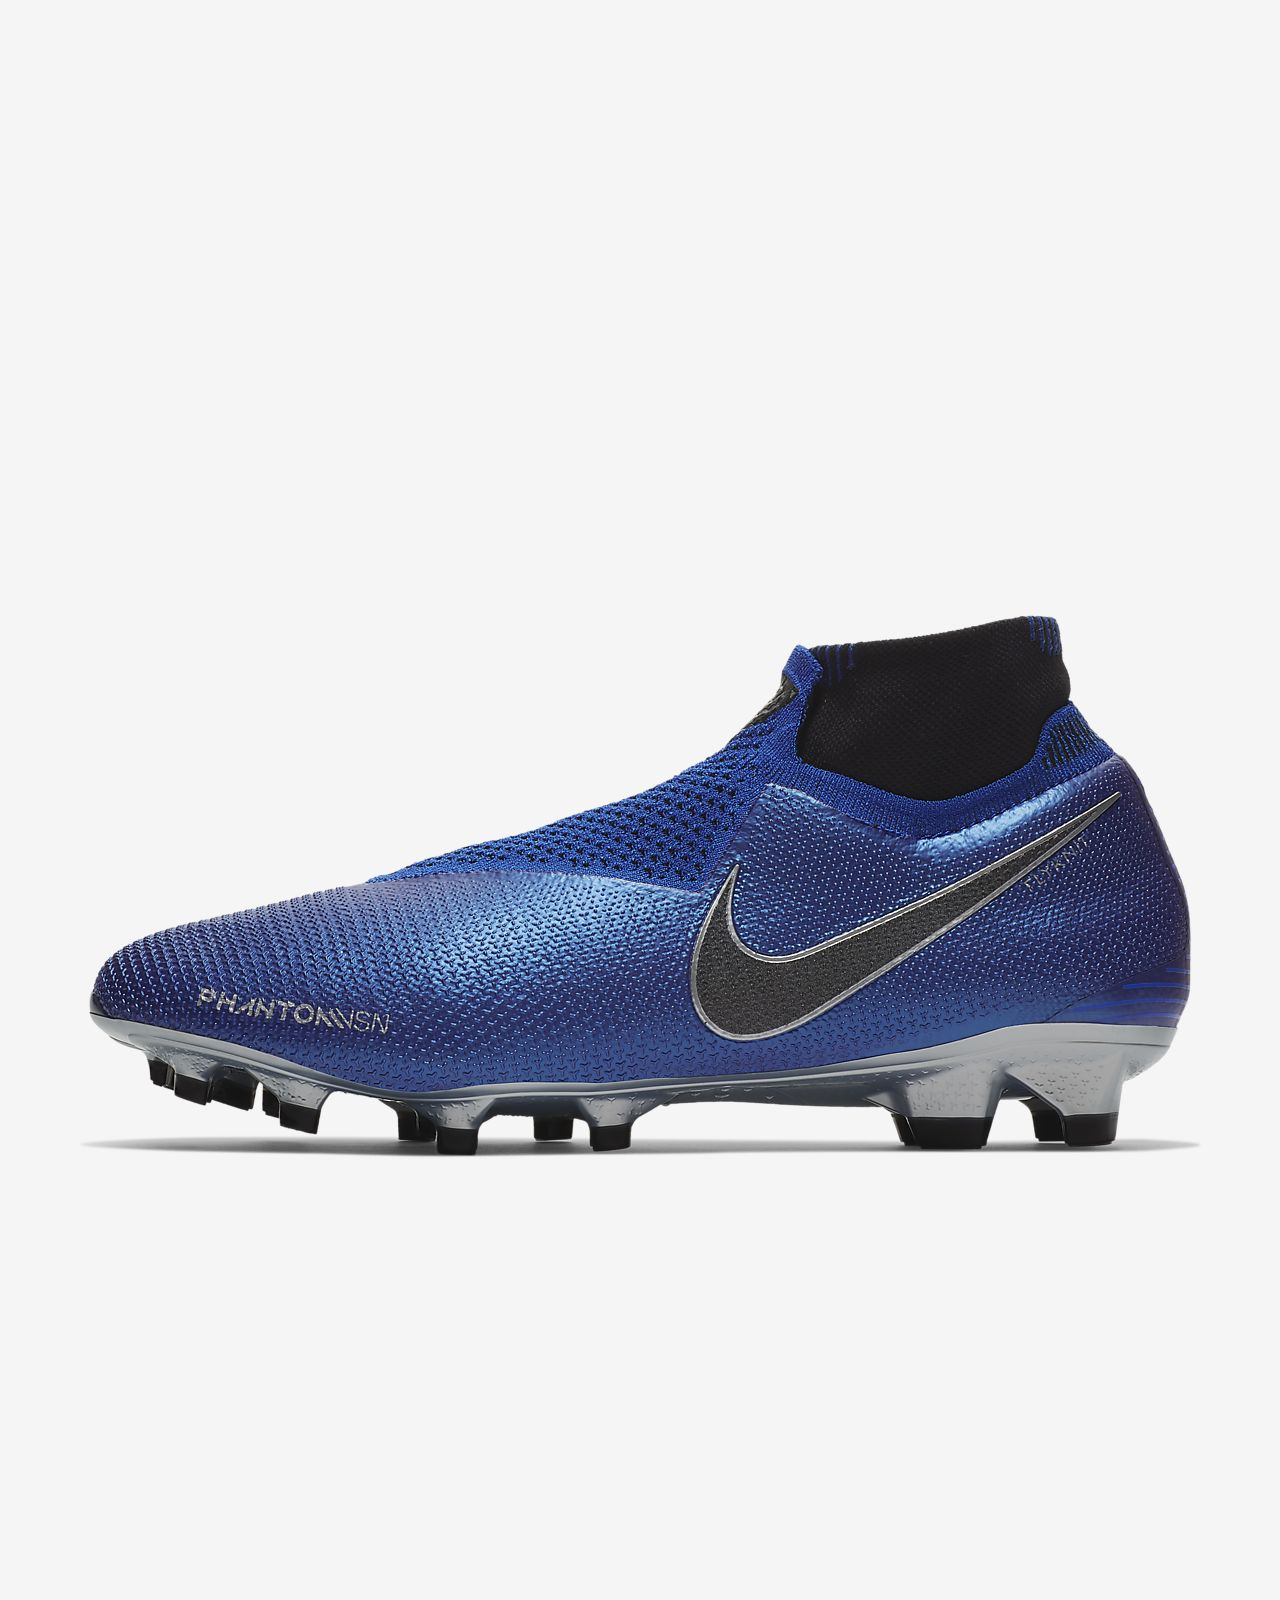 Nike Phantom Vision Elite Dynamic Fit FG Firm-Ground Football Boot